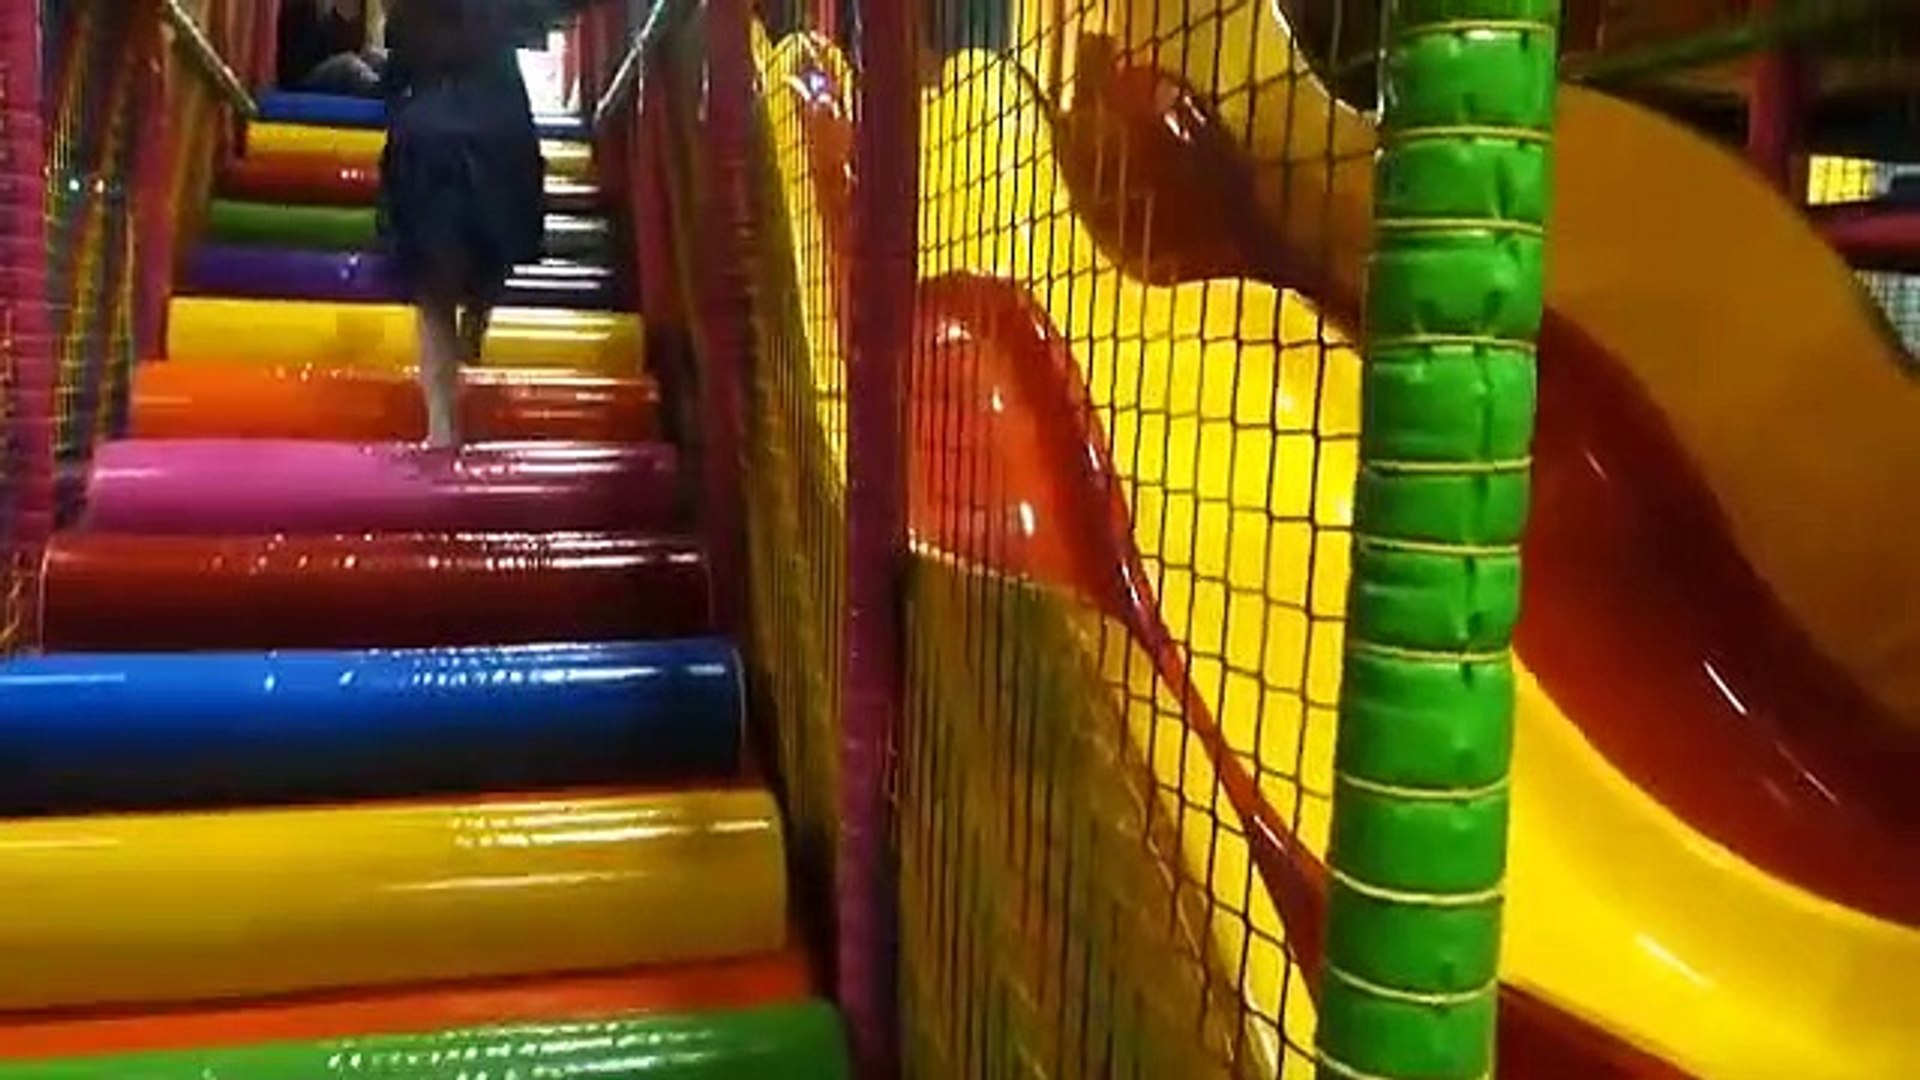 Playing Indoor Playground Kids Fun with Balls Toys Play cente for Kids Playro